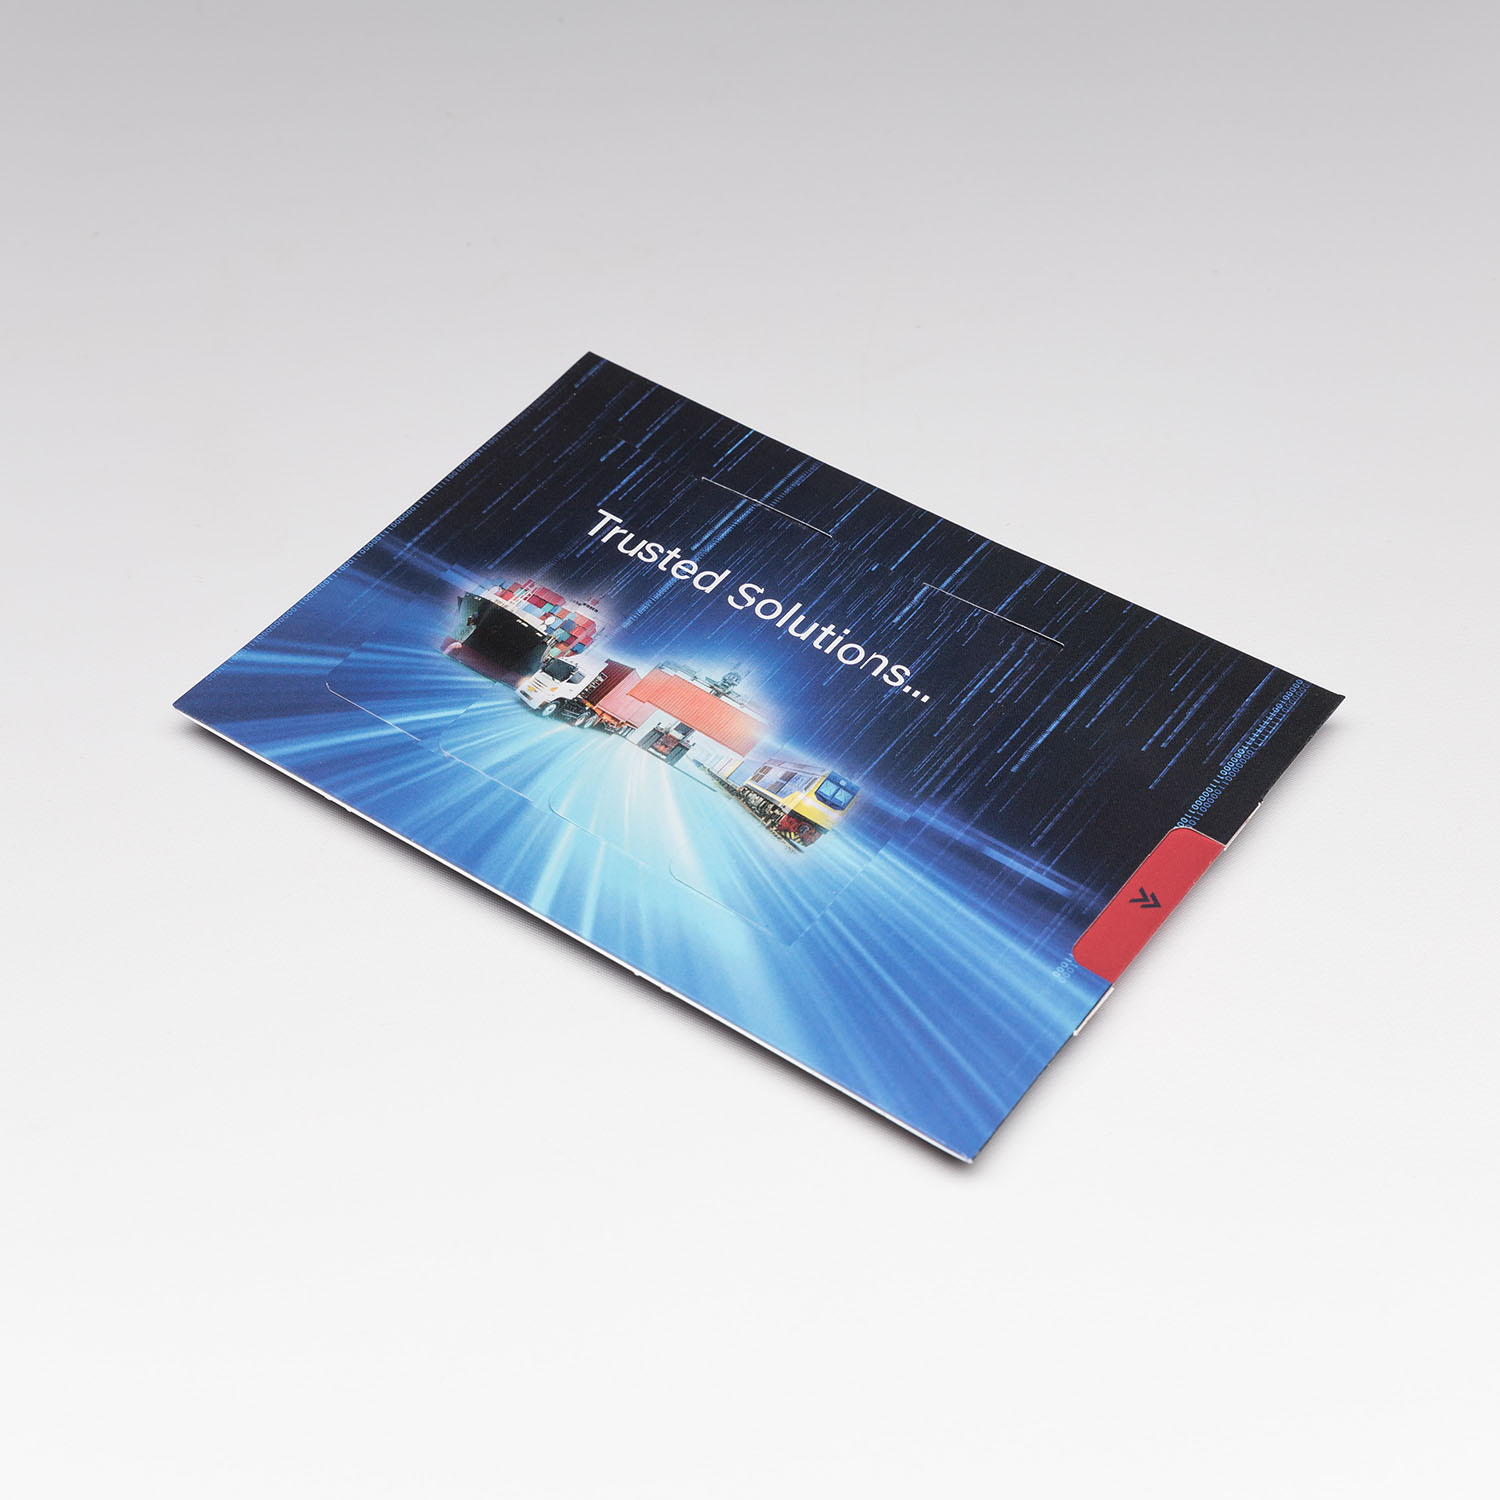 Stand out from the competition at a trade show with our Magic Changing Picture. Sure to show the shift from old to new